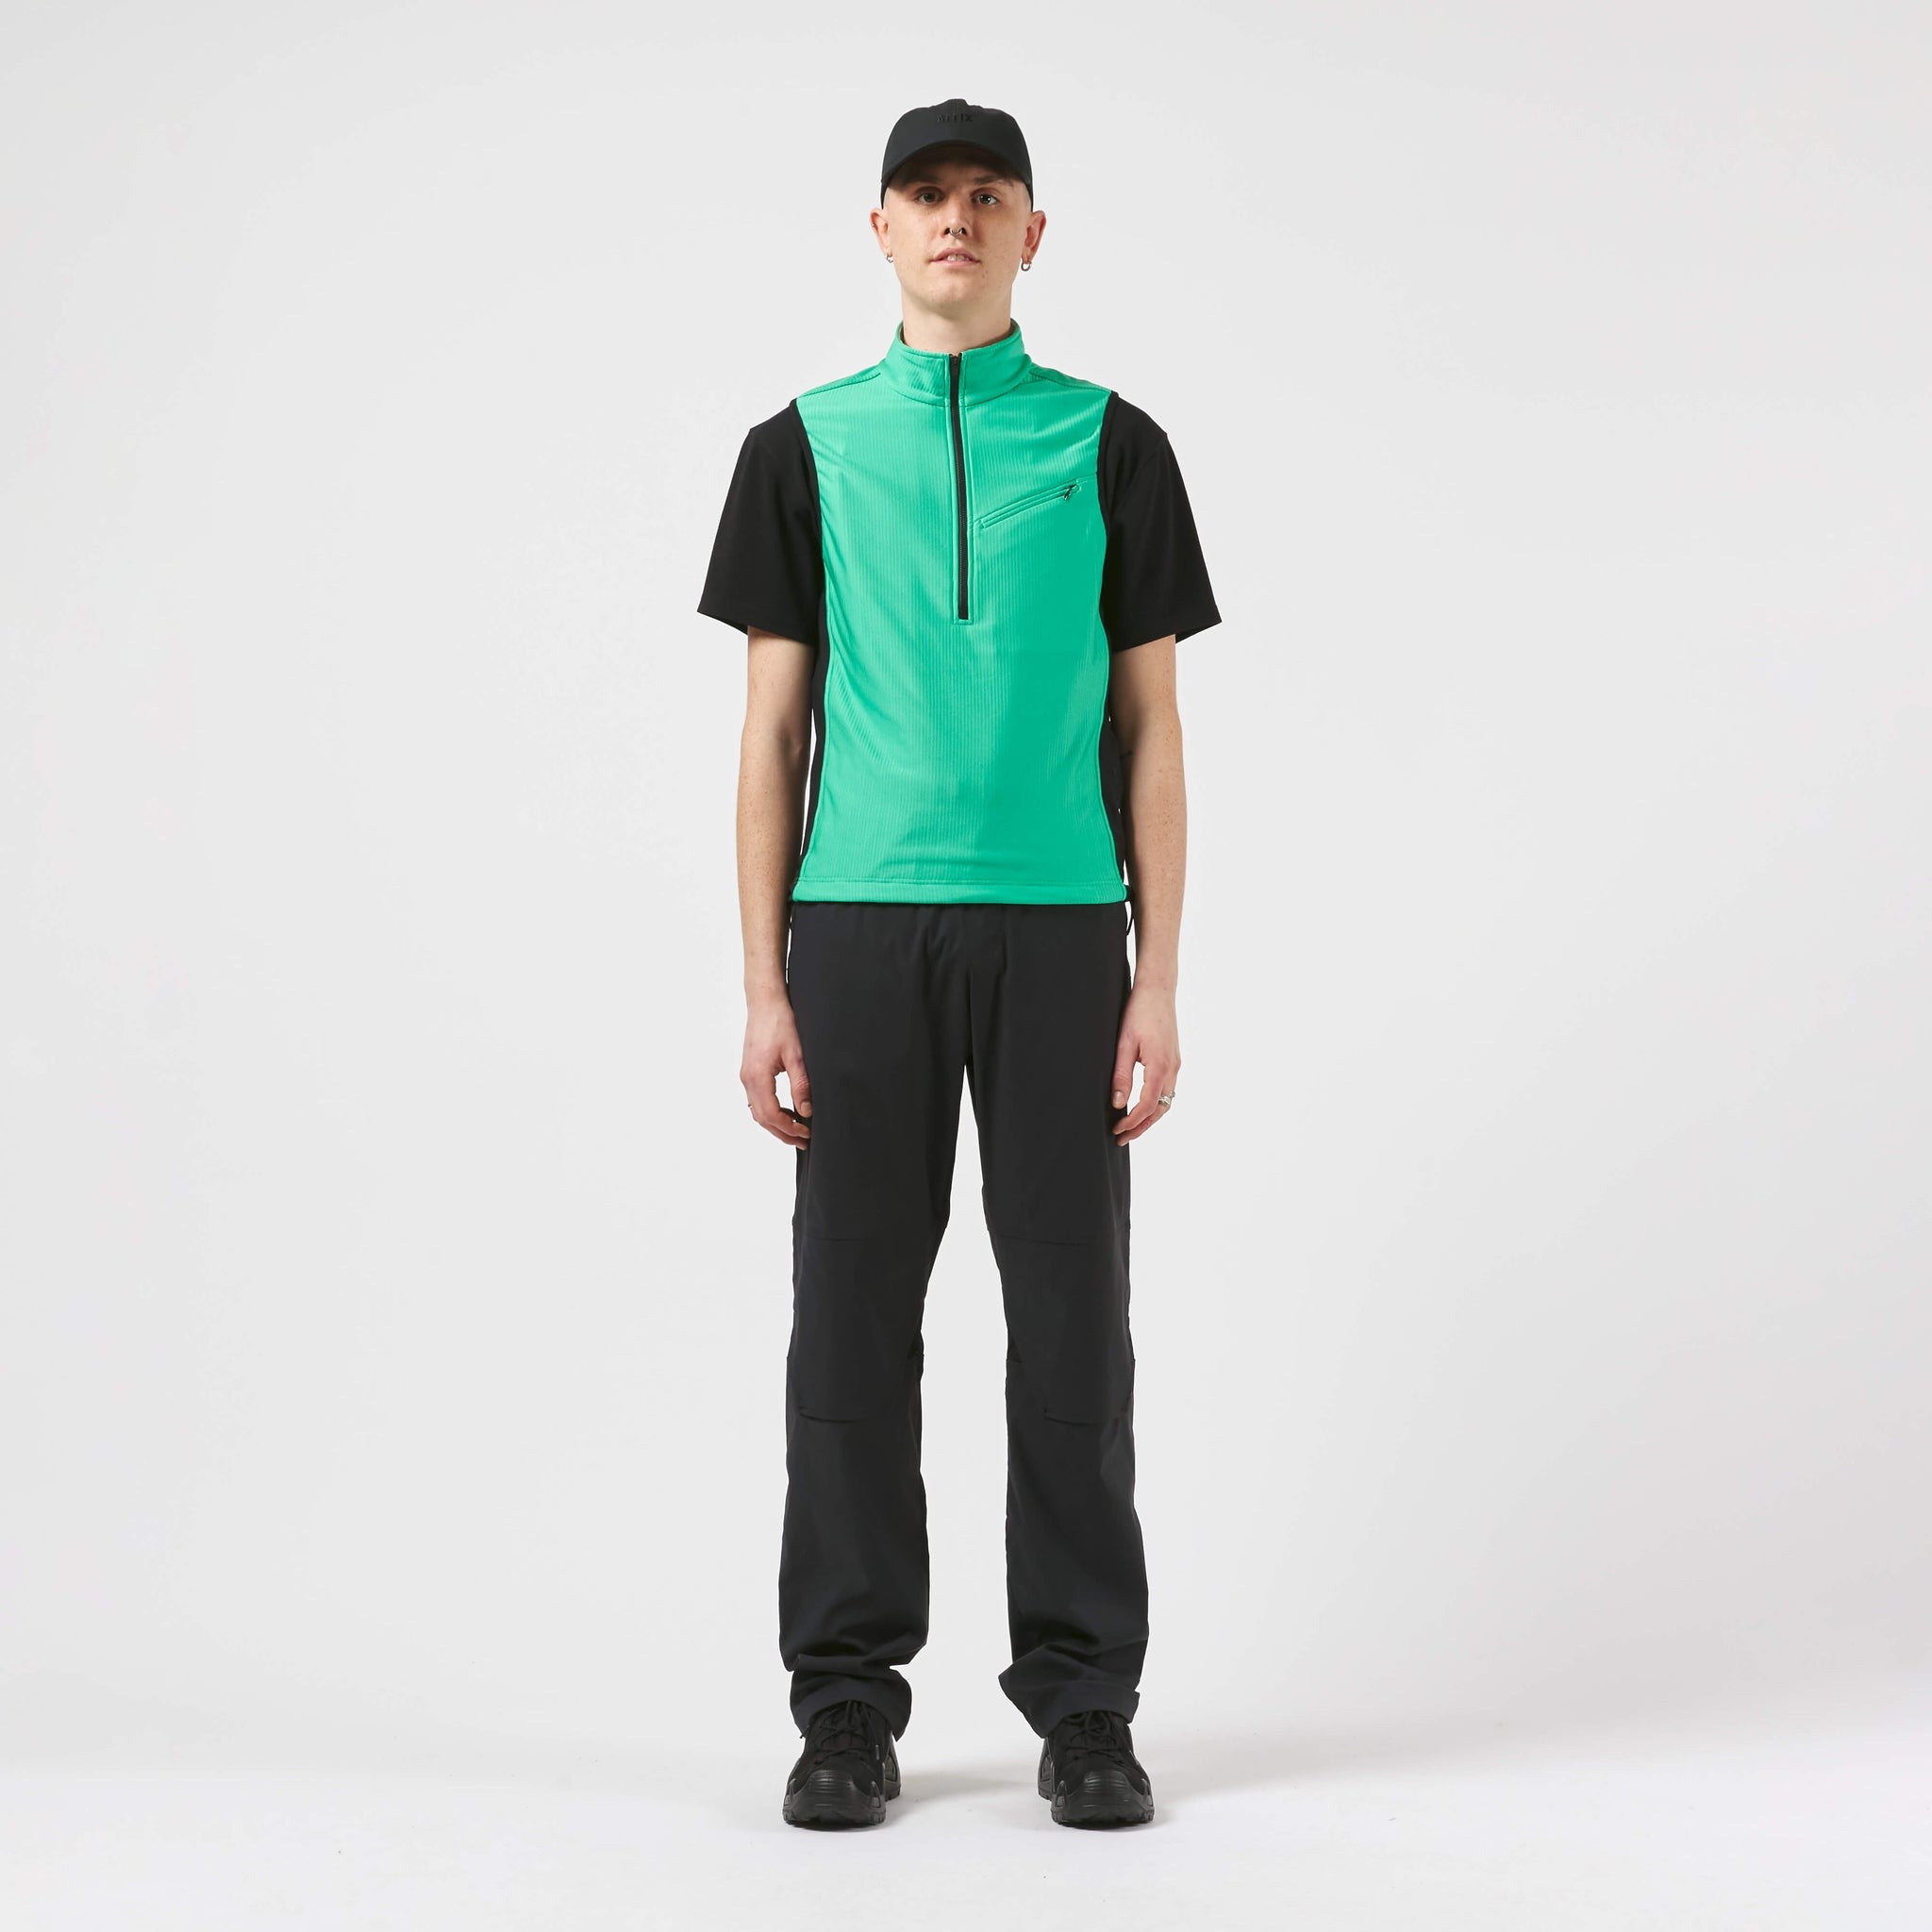 AFFX WRKS AFFIX WORKS PANEL VEST BLAZE GREEN EXCLUSIVE